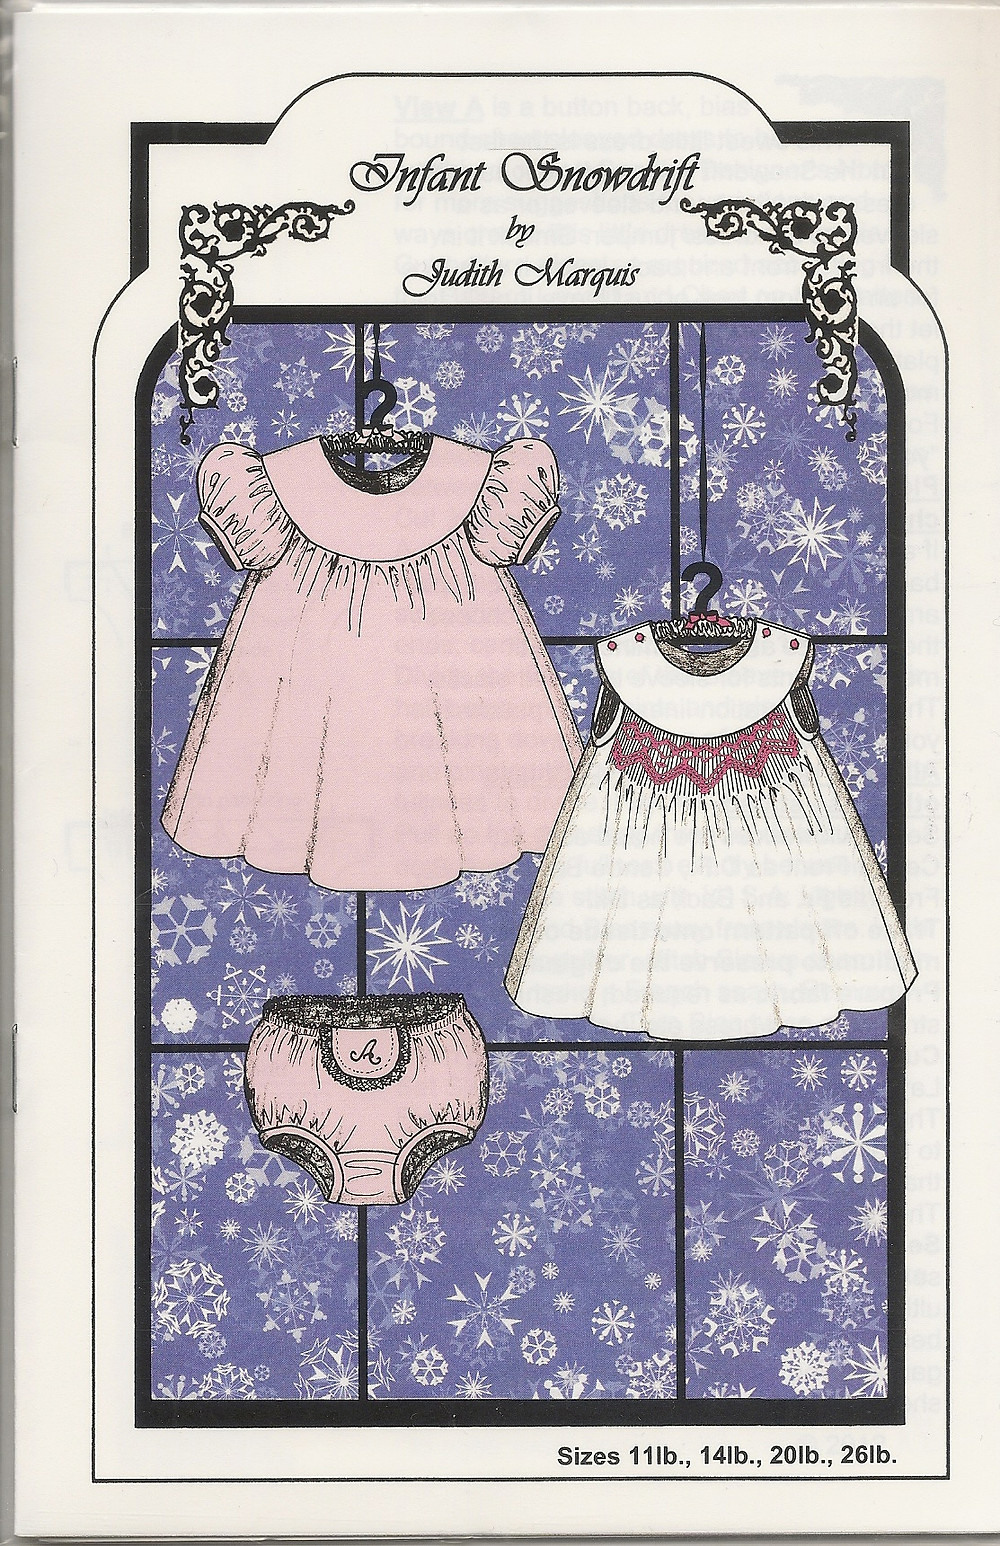 Infant Snowdrift sewing pattern for baby dress and panties| Pink Hollybush Designs